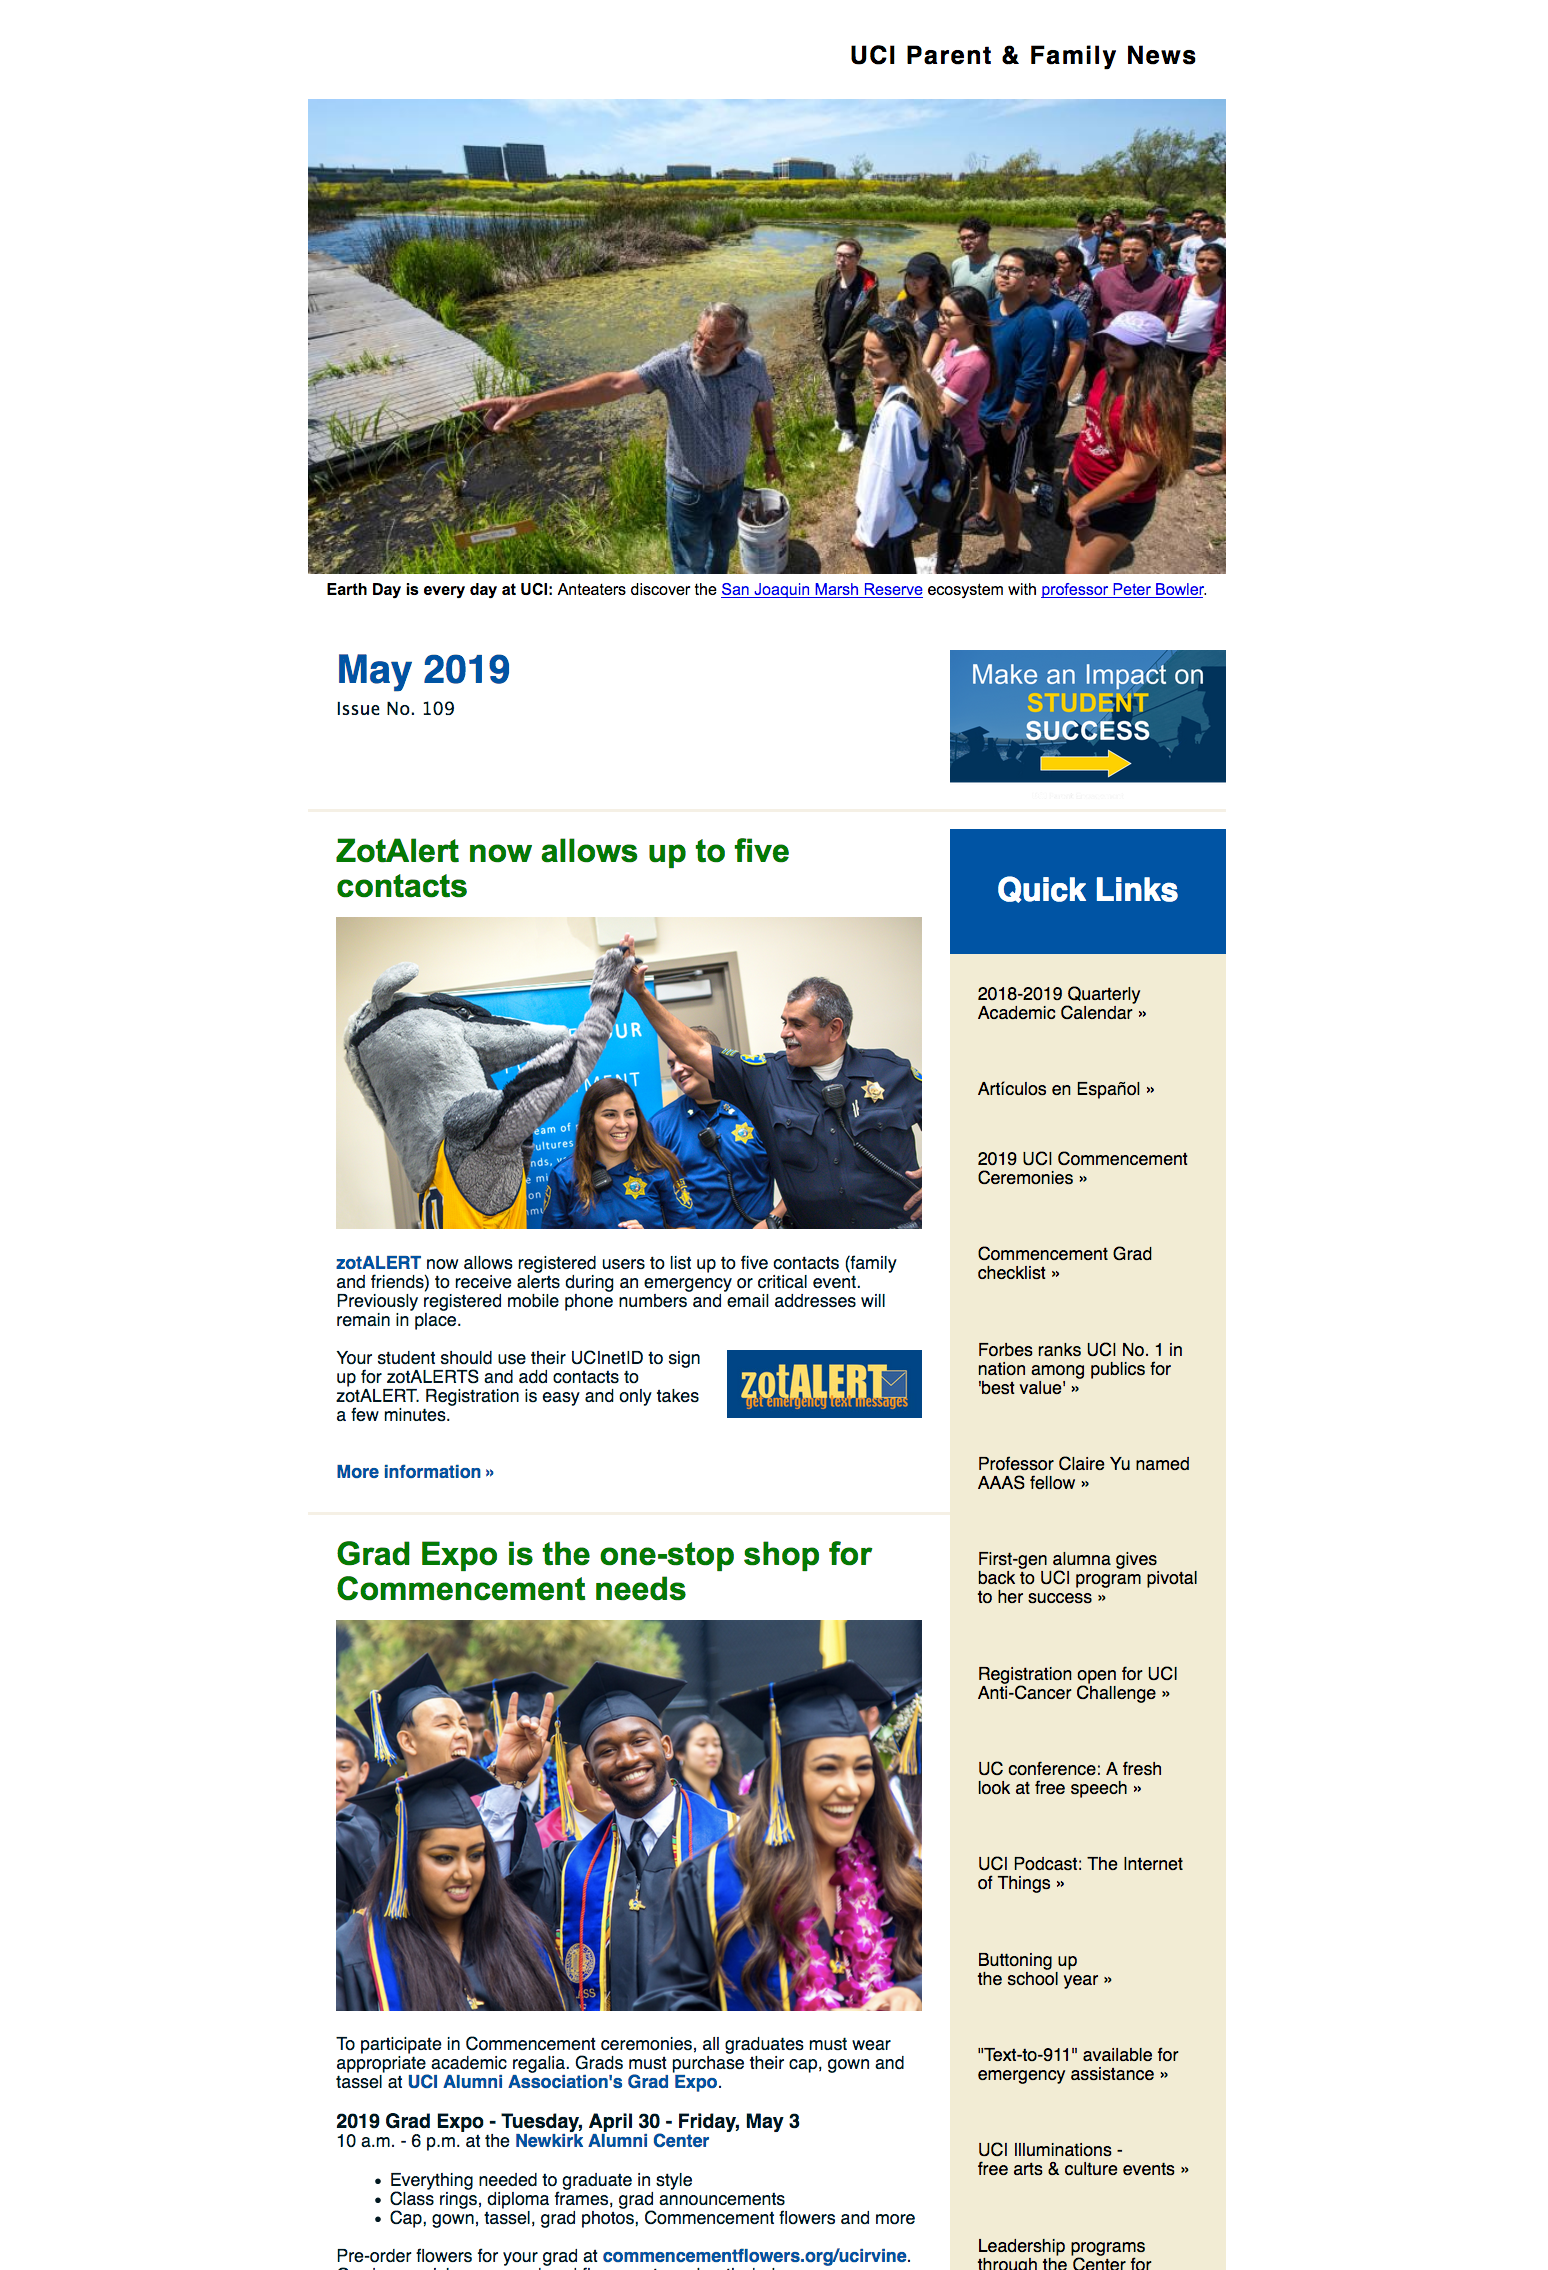 May 2019 eNews